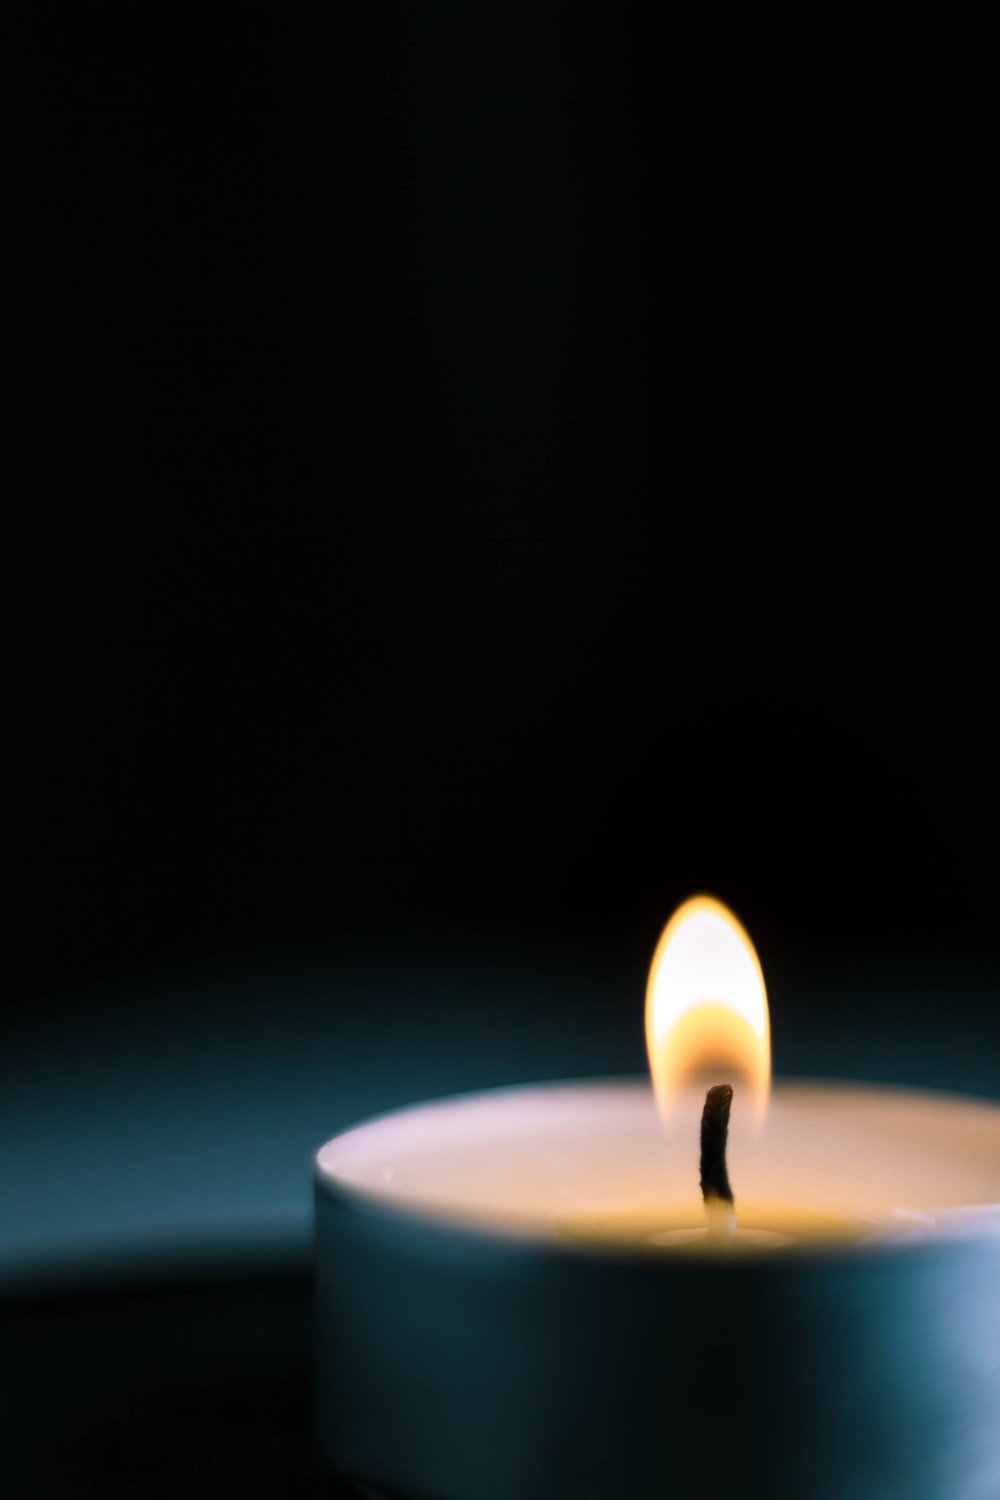 white candle with fire in dark room